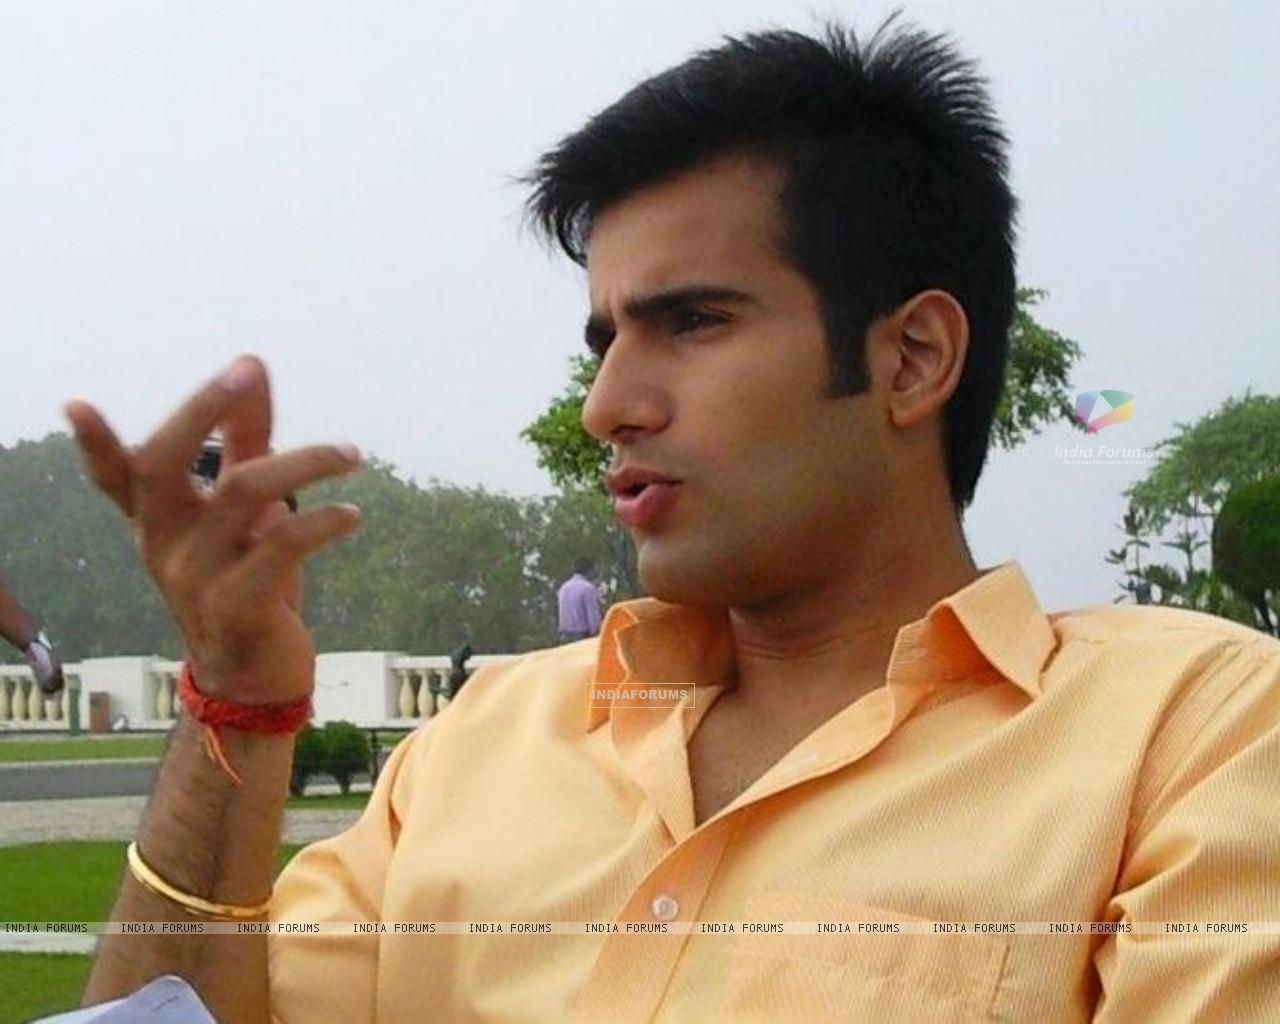 Karan Tacker on the sets of Ek Hazaaron Mein Meri Behna Hain (164706) size:1280x1024